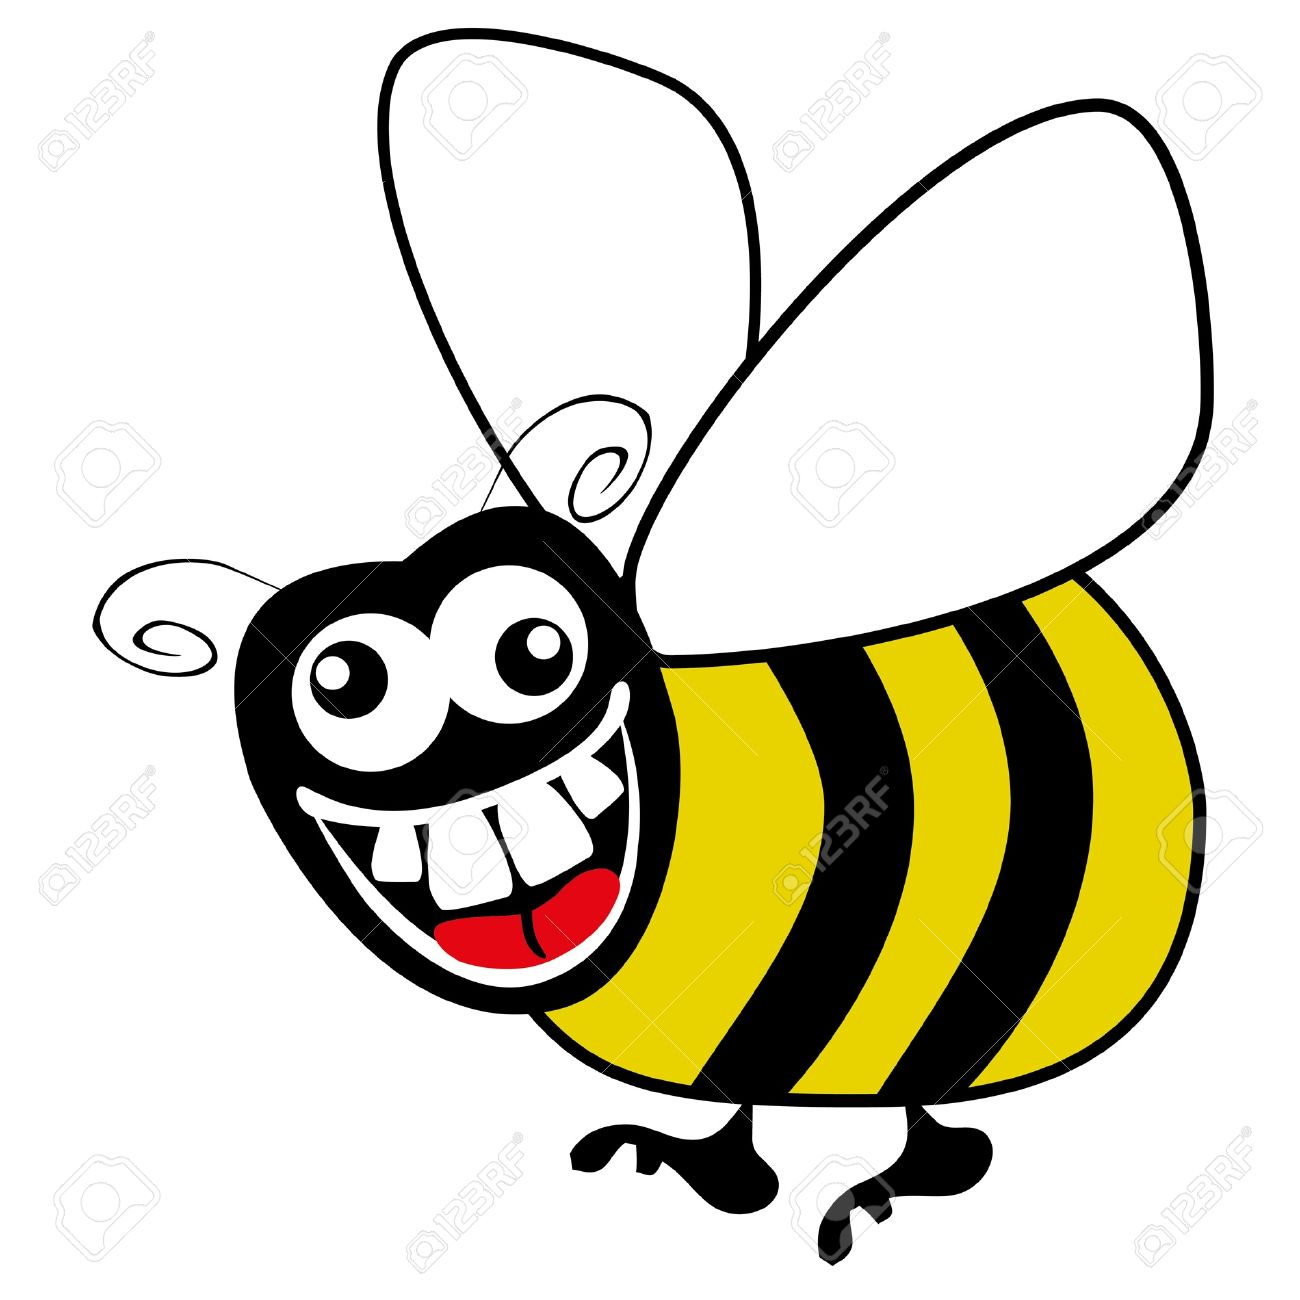 1300x1300 High Tech Cartoon Bumble Bee Pictures Happy Flying Or Honey